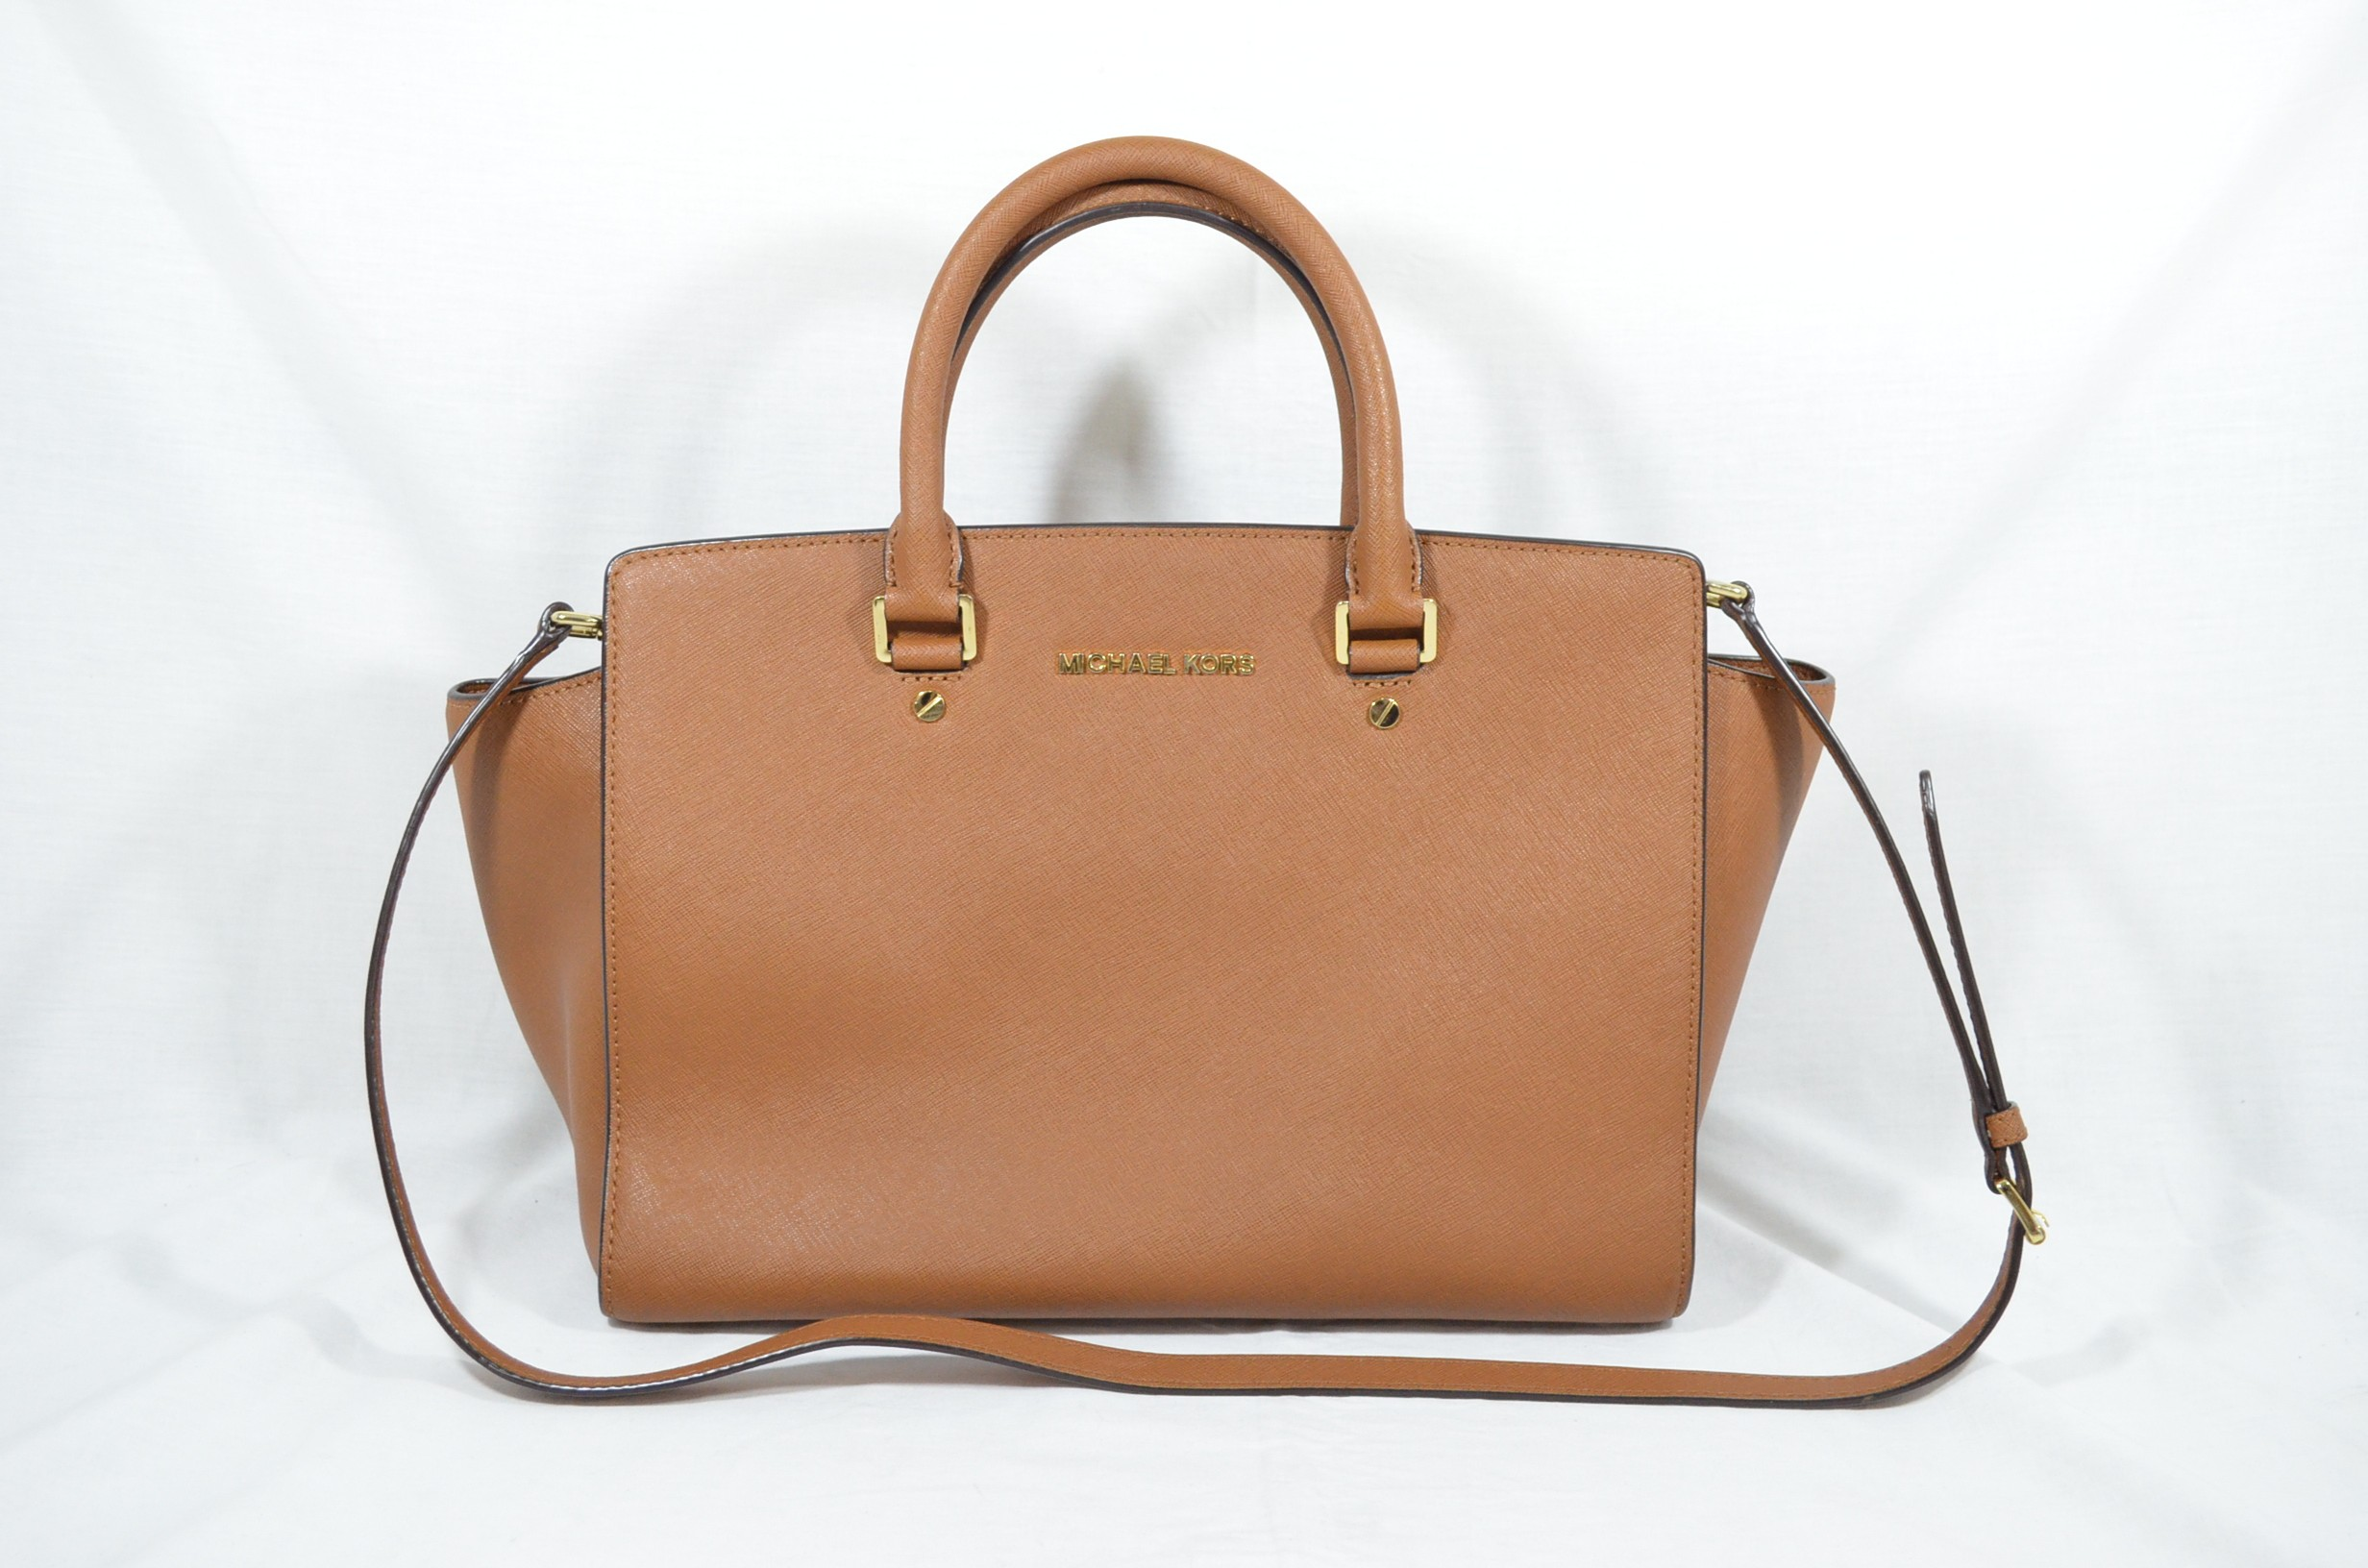 Michael kors tote bags philippines - Michael Kors Large Selma Top Zip Satchel Luggage Saffiano Leather Tote Bag